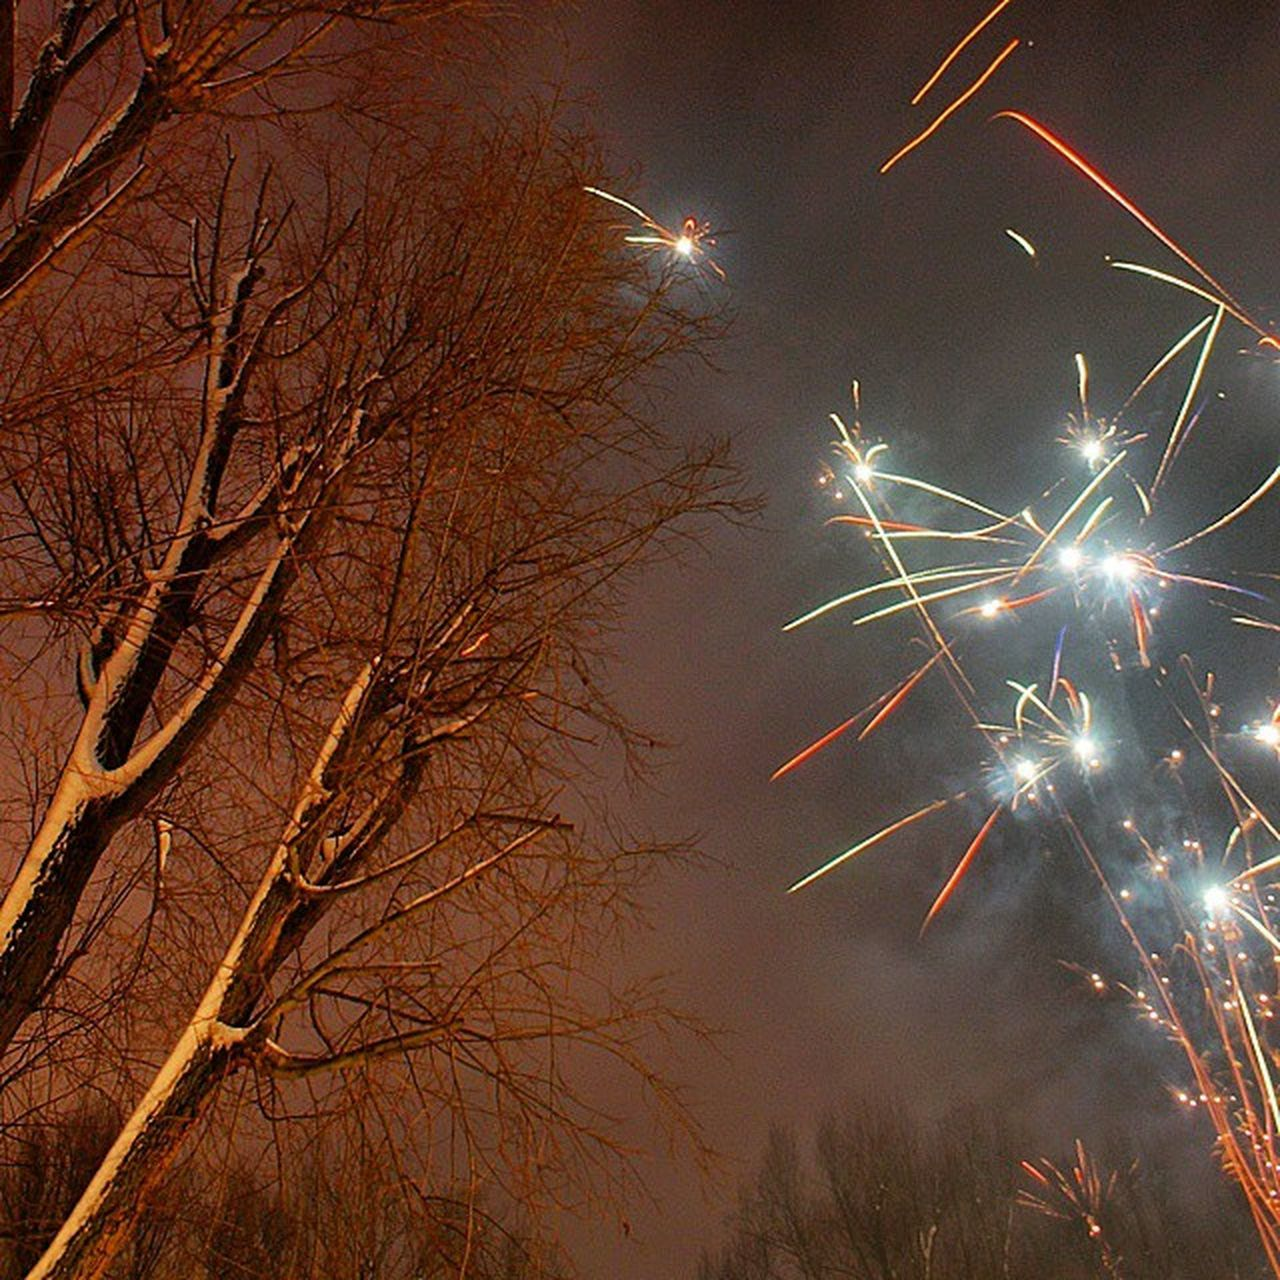 celebration, night, firework display, exploding, firework - man made object, event, low angle view, long exposure, arts culture and entertainment, motion, outdoors, no people, bare tree, illuminated, sky, firework, tree